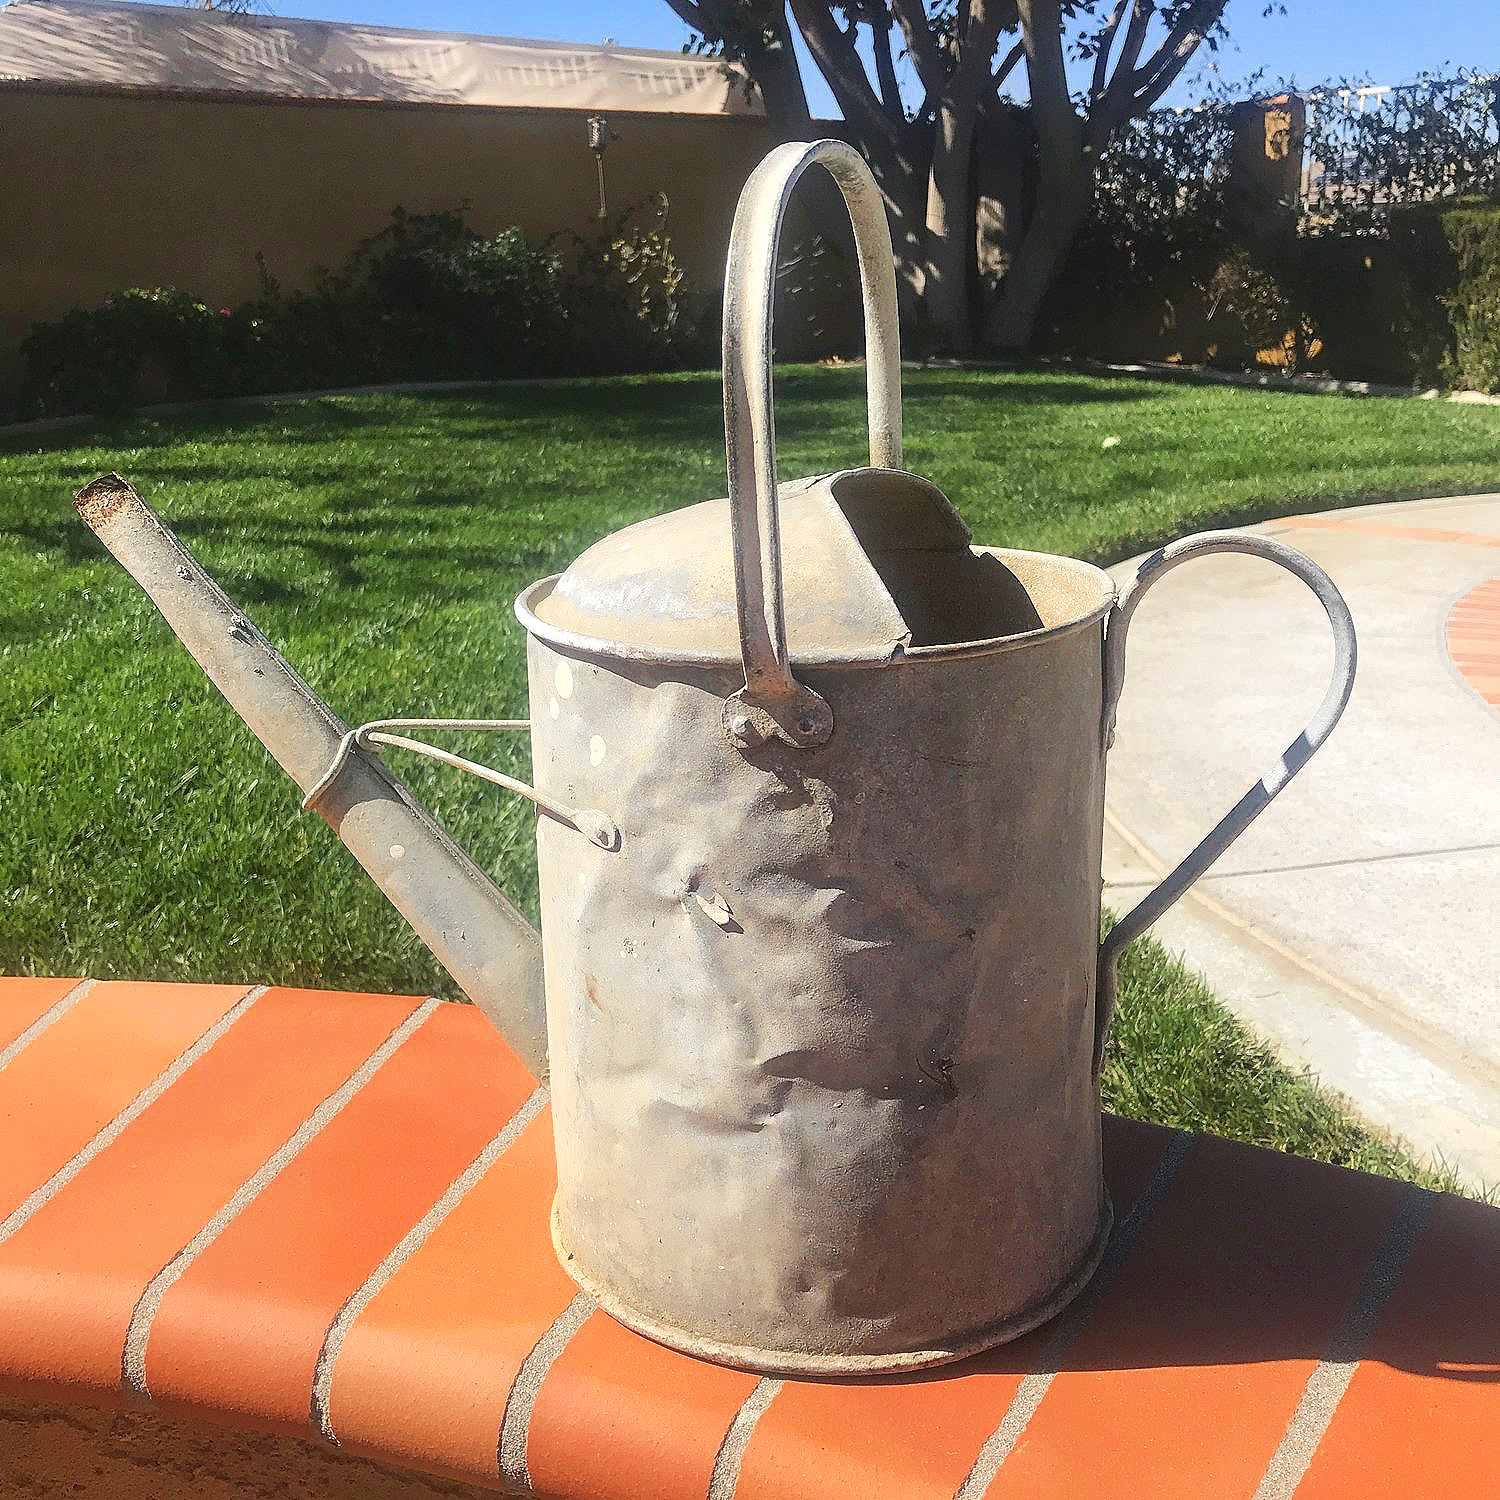 Vintage Watering Cans   Can be used alone, or add flowers to them for perfect centerpieces. Great for that vintage shabby chic affair.